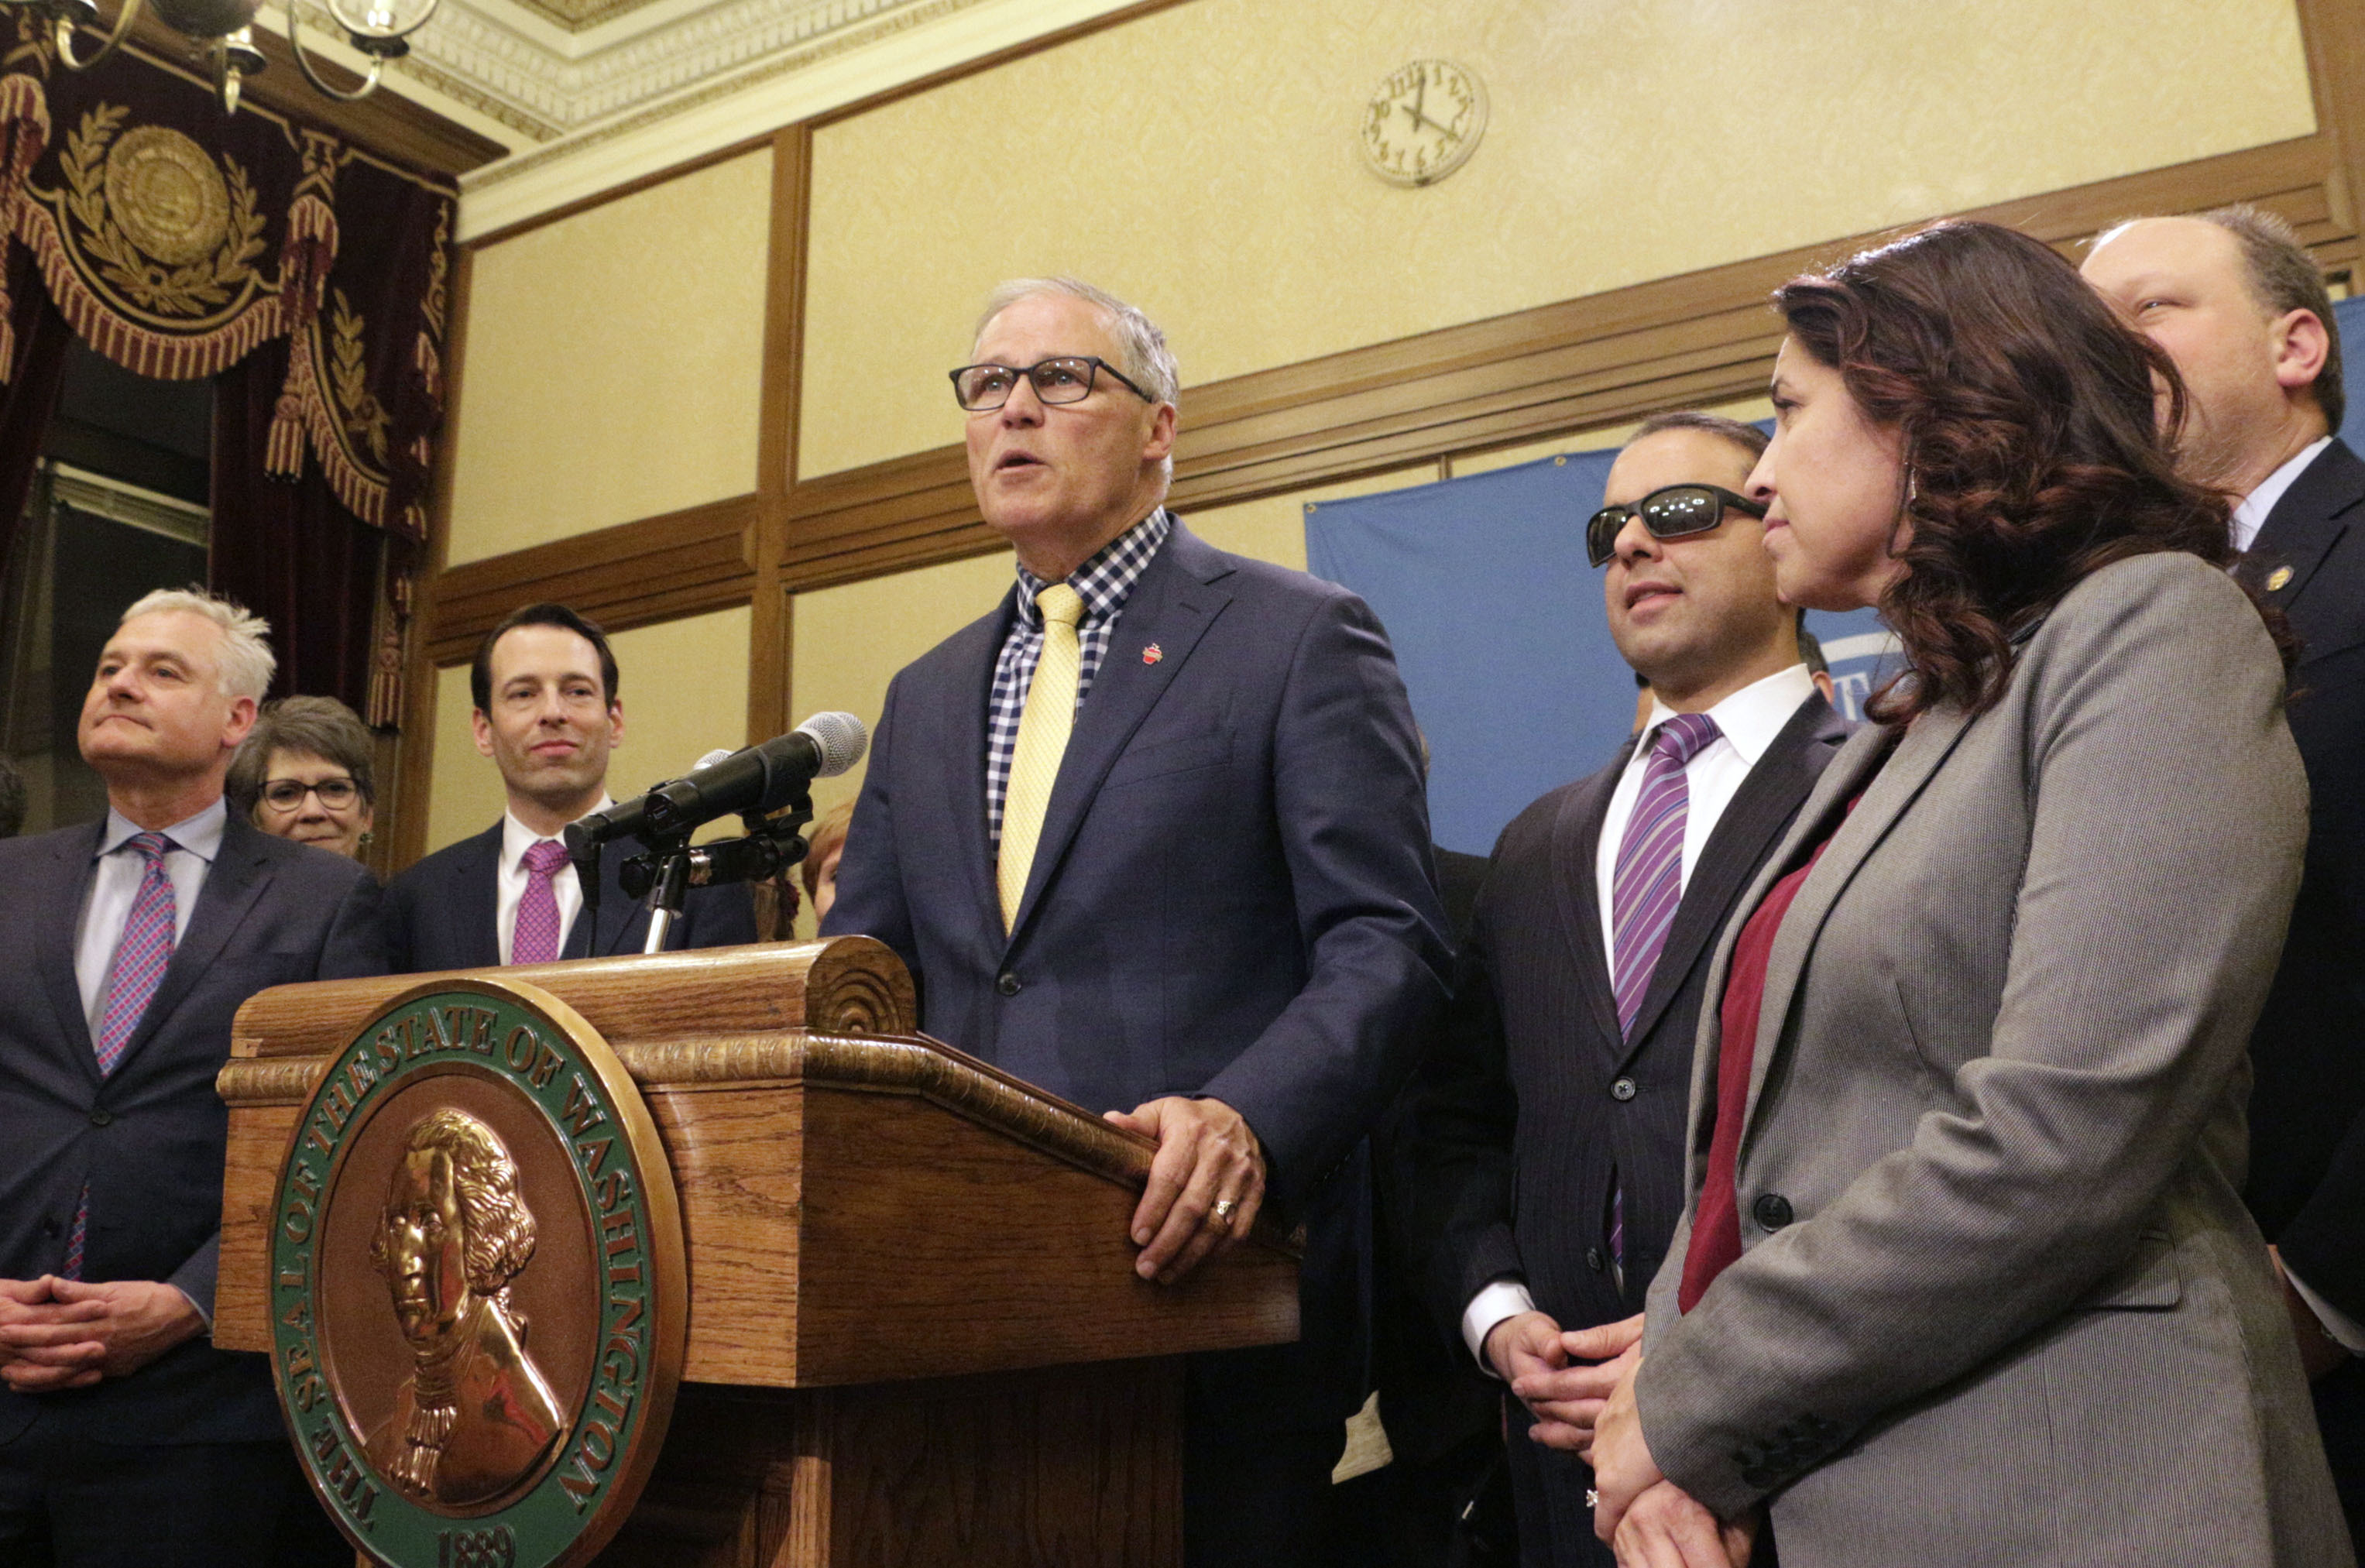 Photo: Washington Governor Jay Inslee - AP